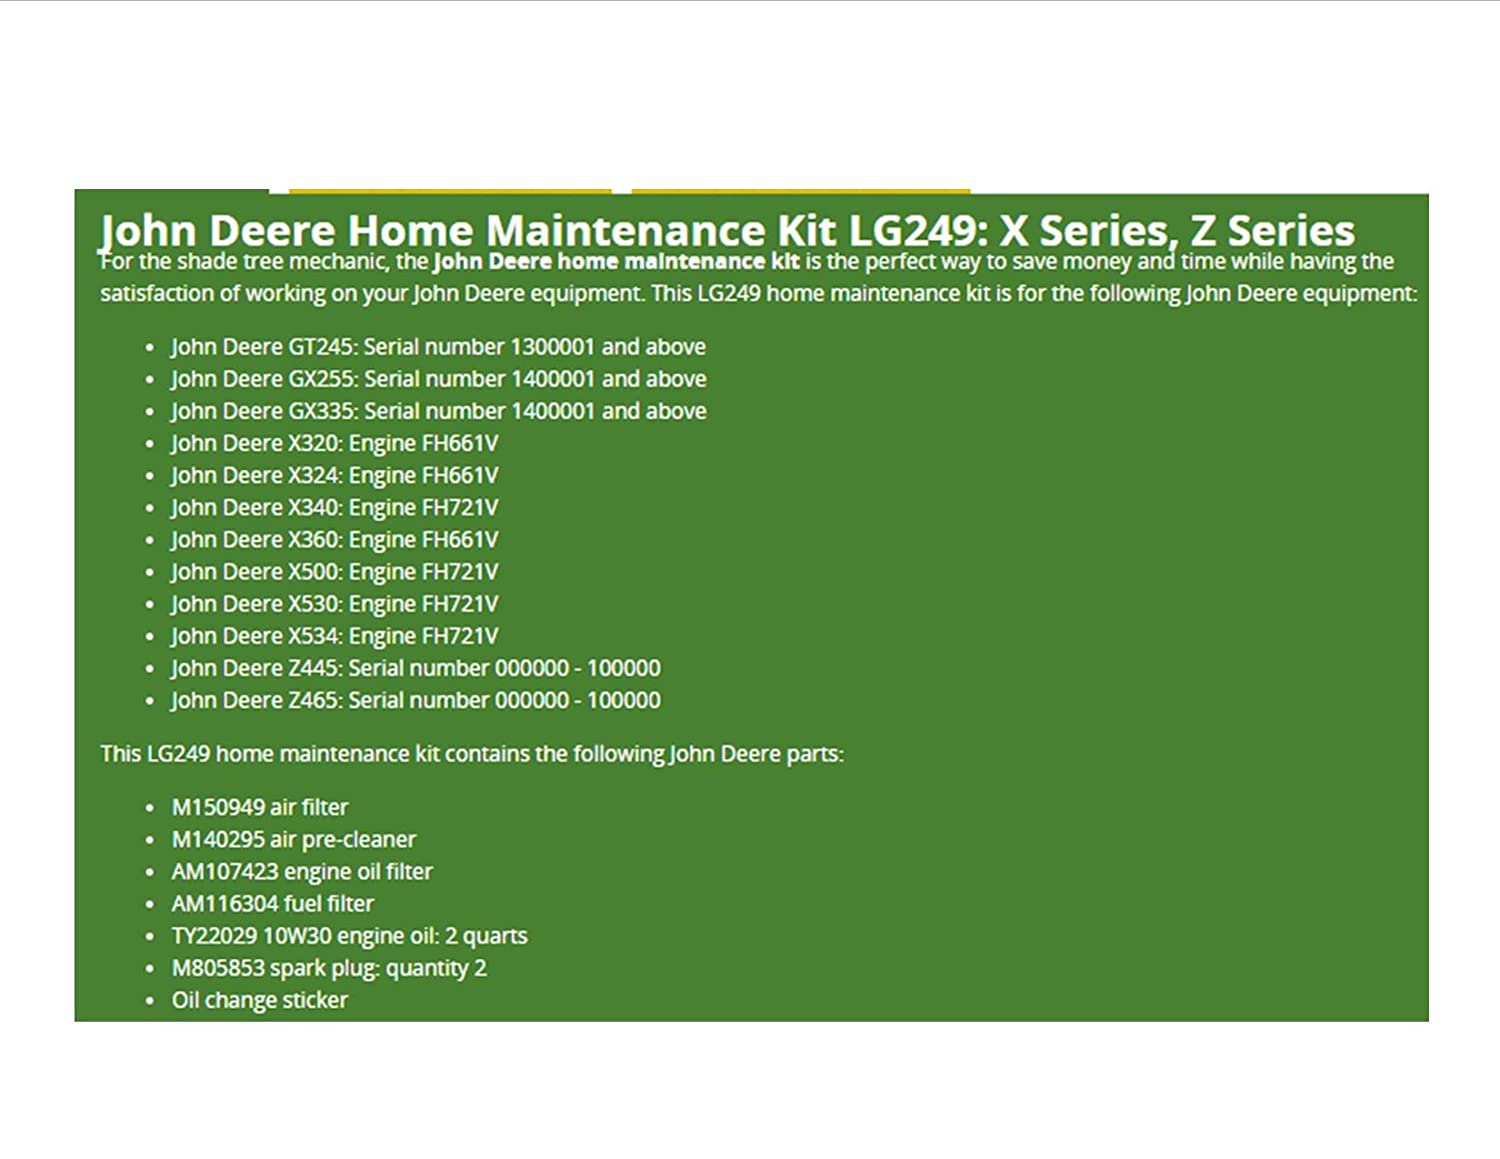 John Deere Home Maintenance Kit Fits Z445 Z465 X Fuel Filters 320 X324 340 X360 500 Oil Lg249 Check Engine Serial Number Before Ordering